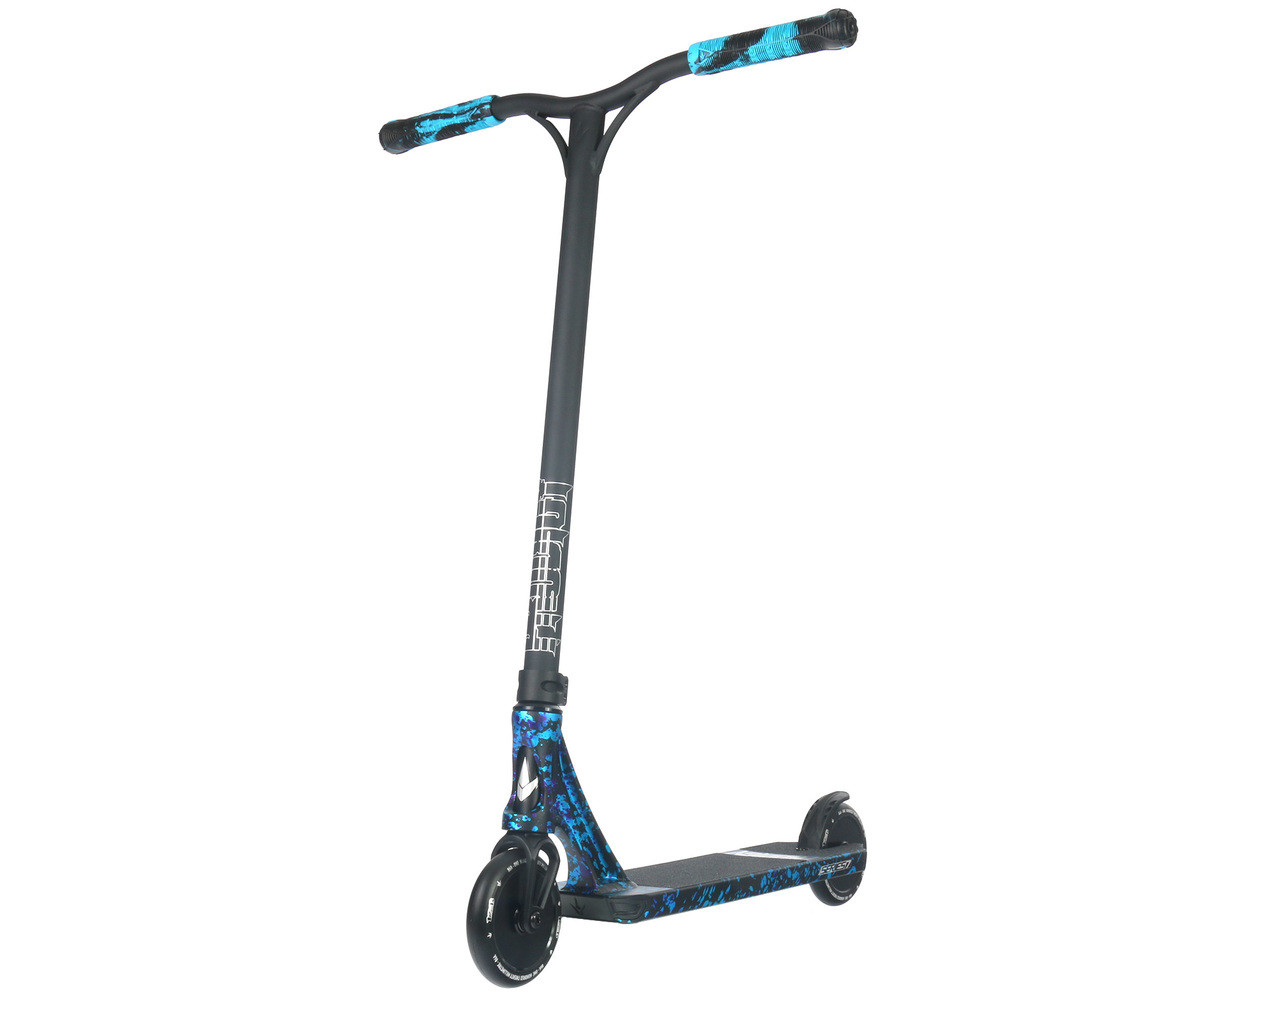 Envy Prodigy Series 7 Complete Scooter | Splatter